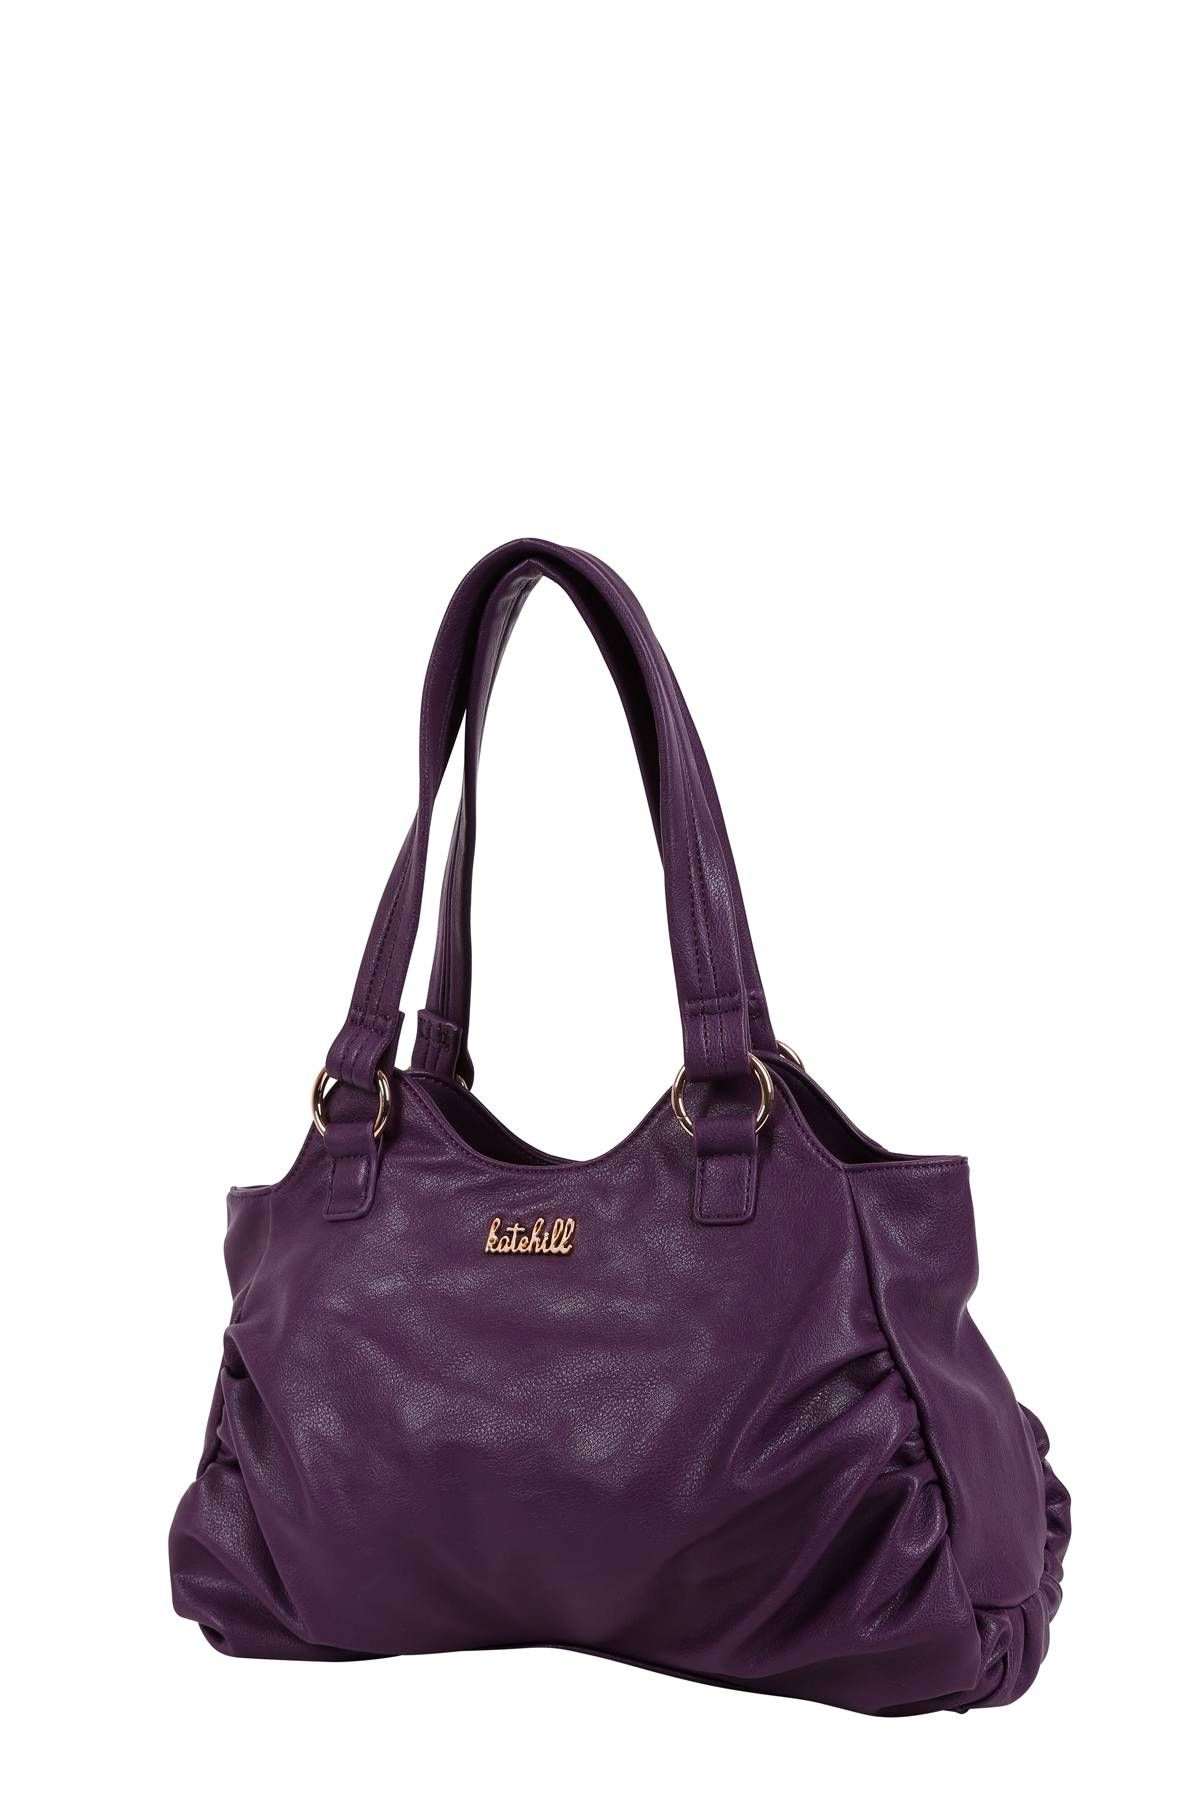 Handbags Online Kate Hill Zella Tote Victoria Station